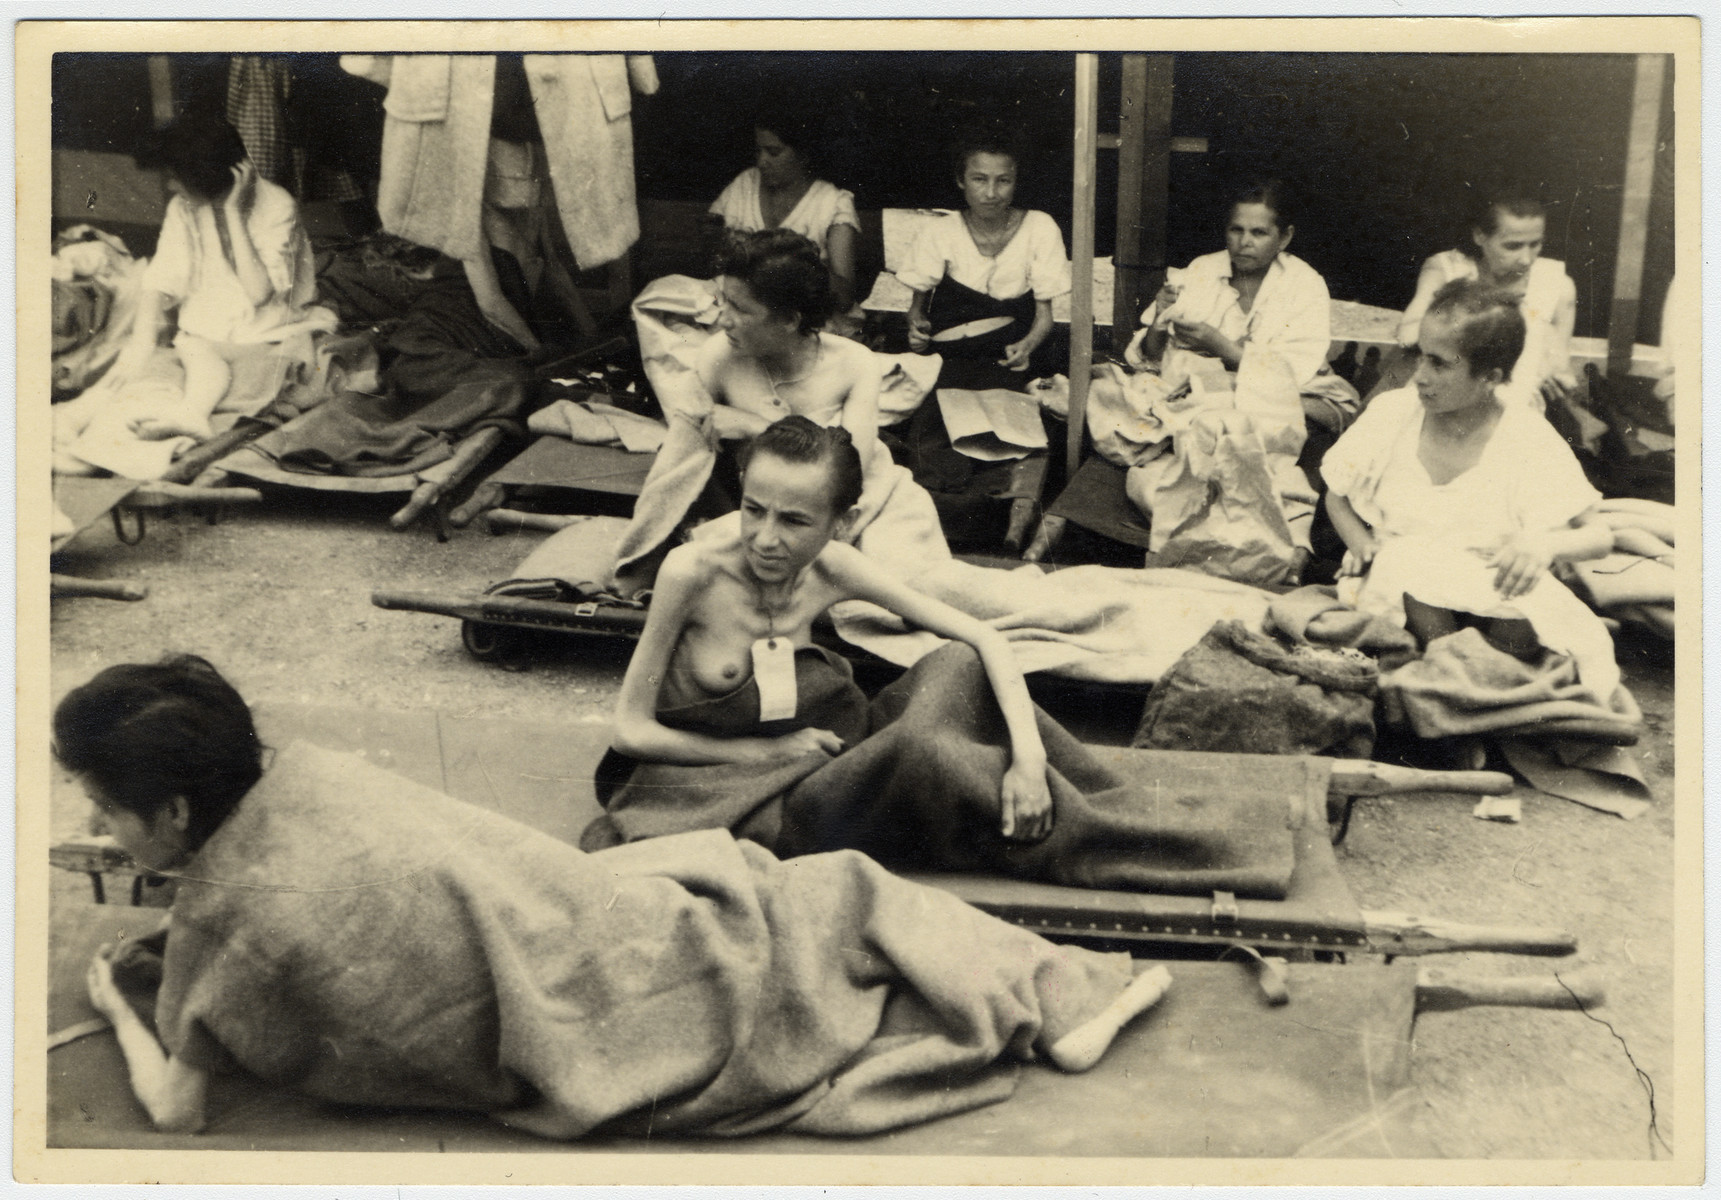 Female Bergen-Belsen survivors rest on stretchers.